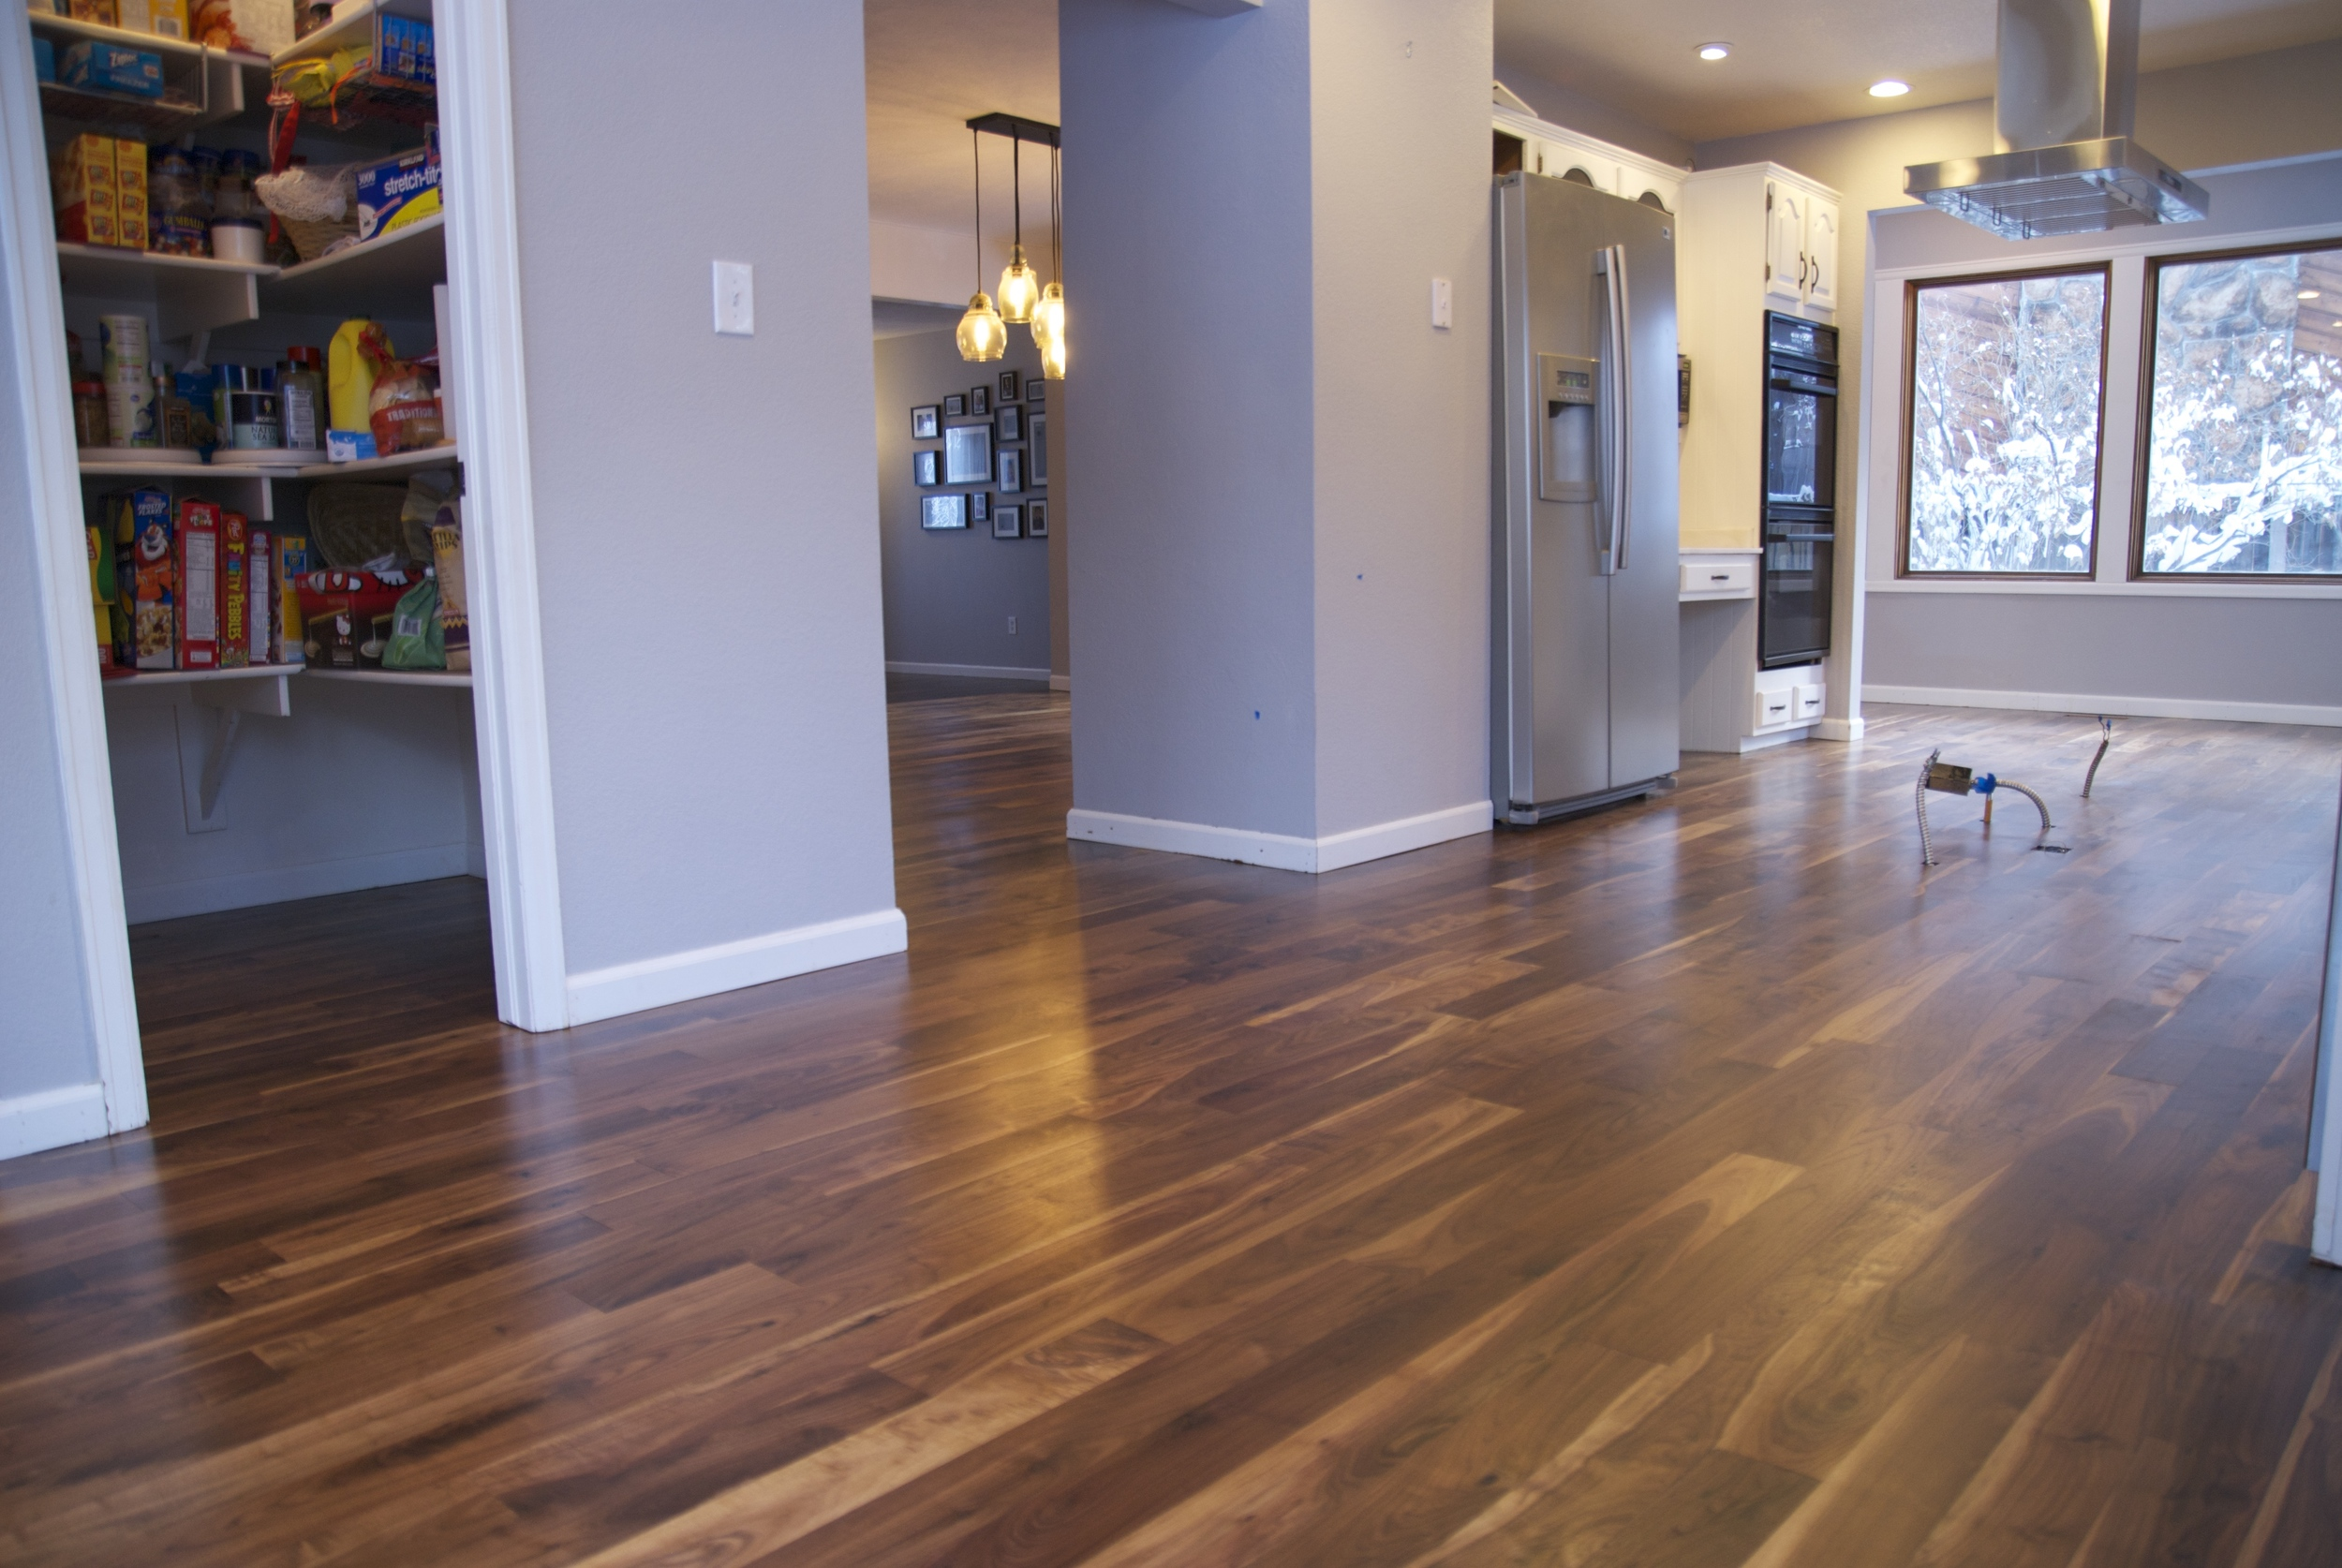 Second image of Residential Hardwood Flooring for The Ranch - Westminster by ASA Flooring